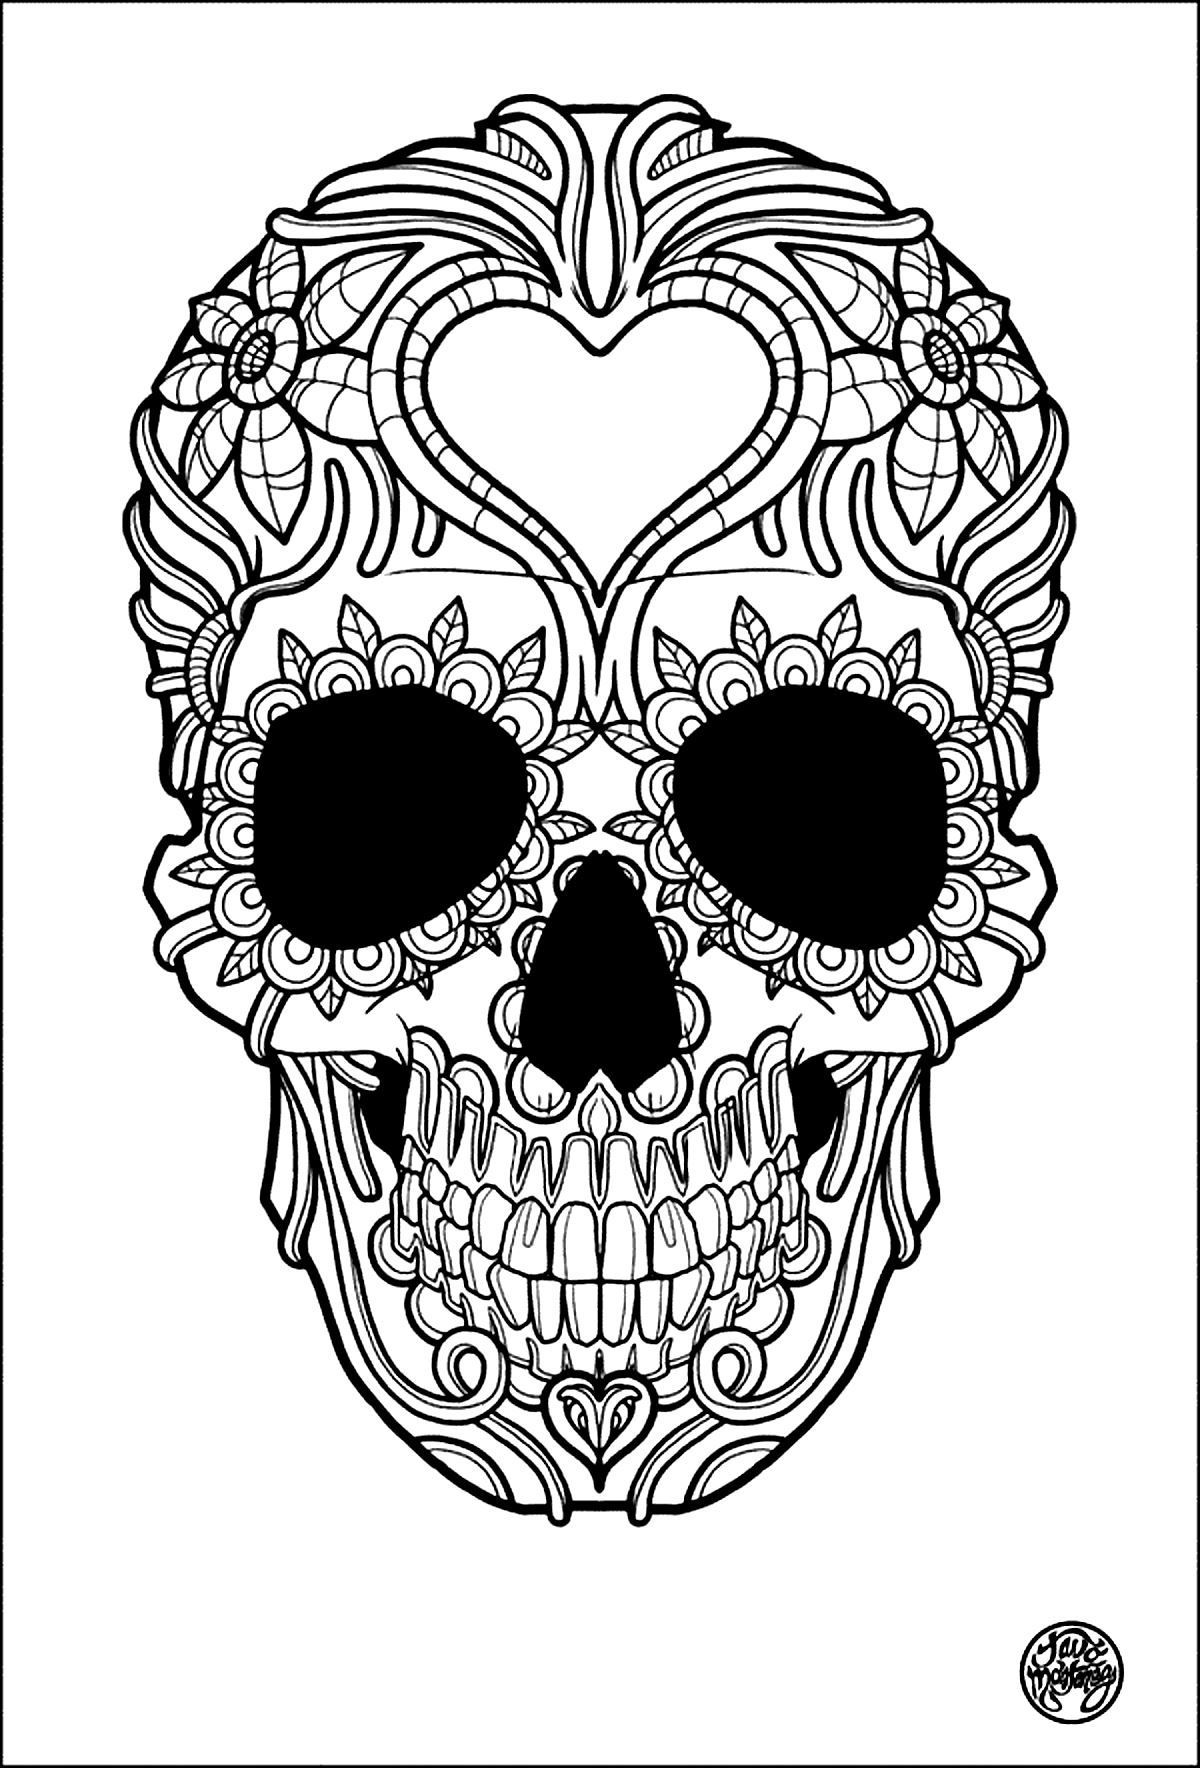 coloring-adult-tatouage-simple-skull-tattoo, From the gallery ...